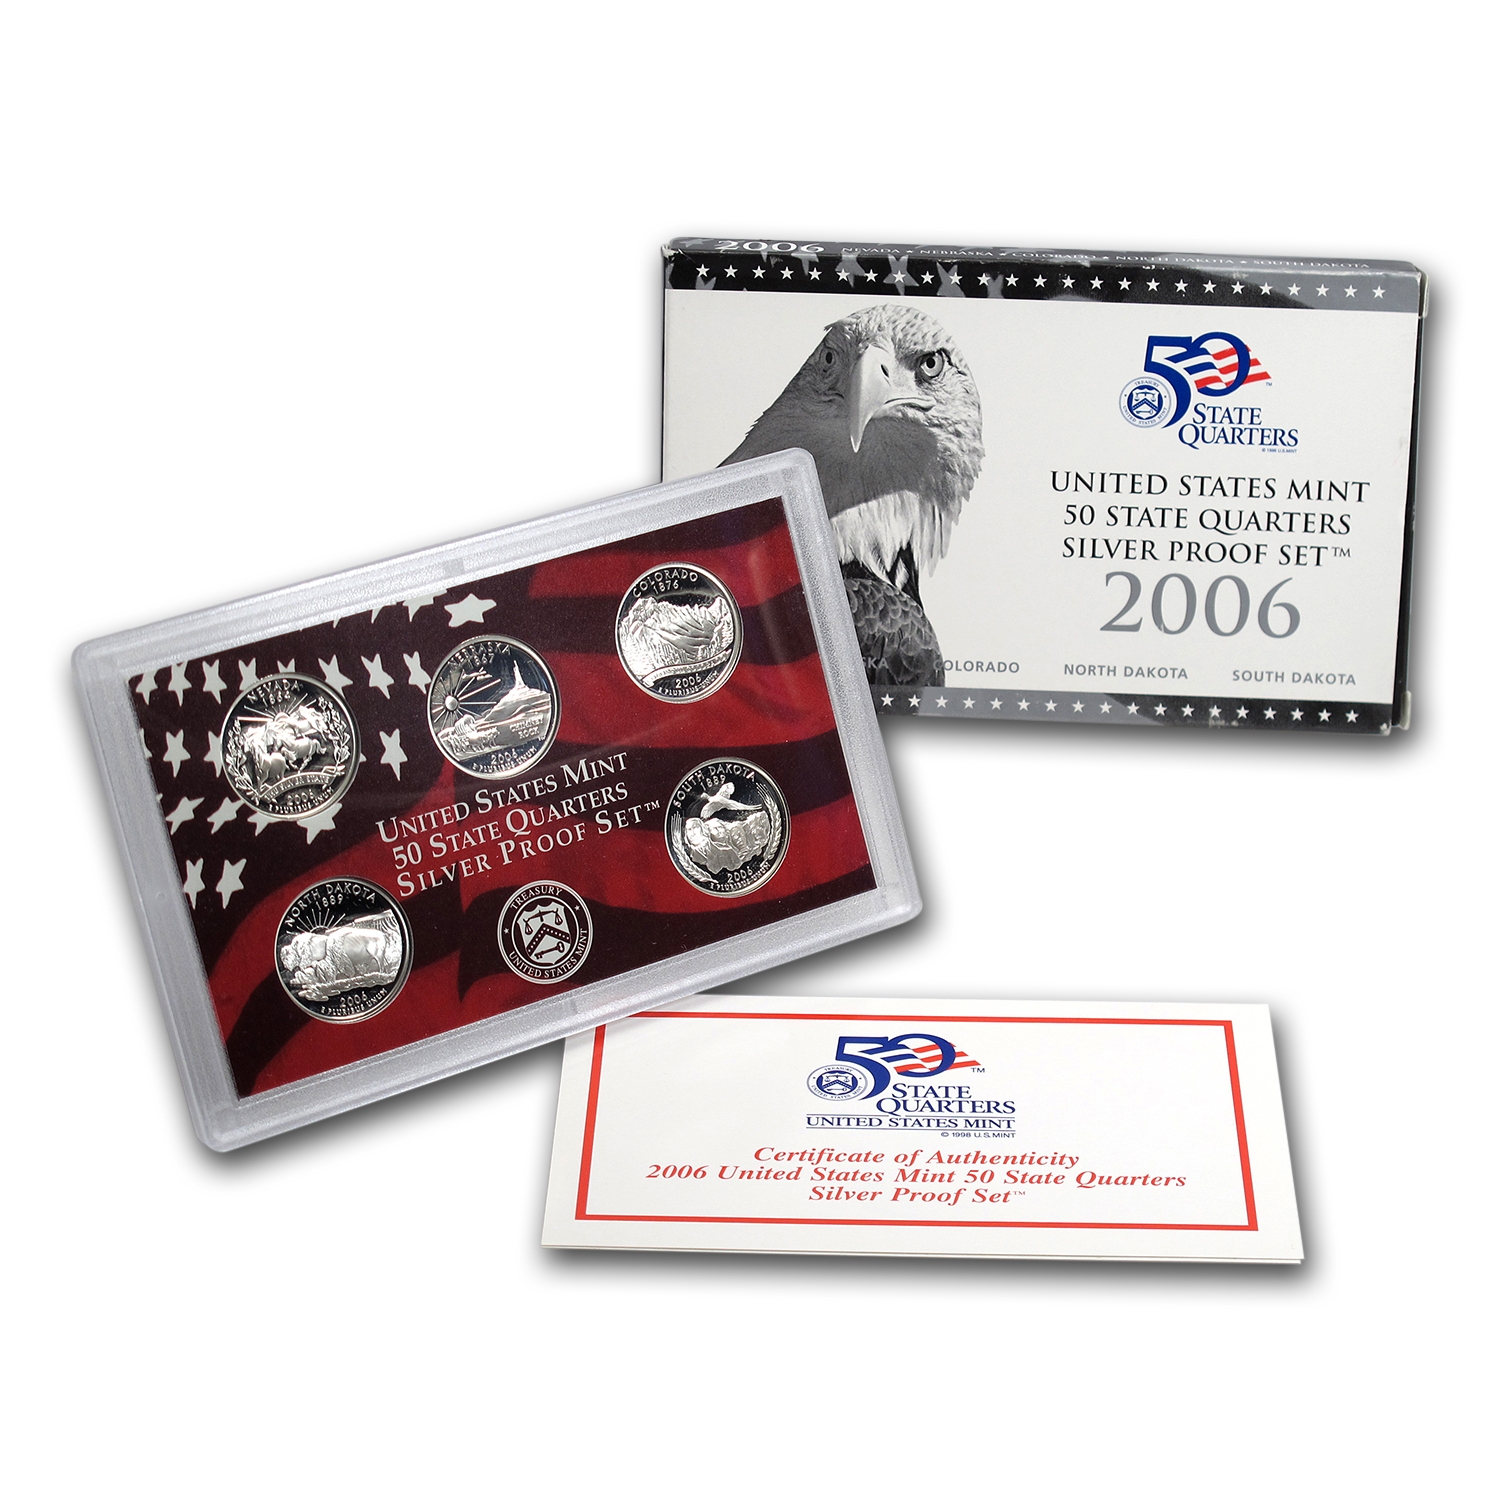 2006 State Quarters Silver Proof Set